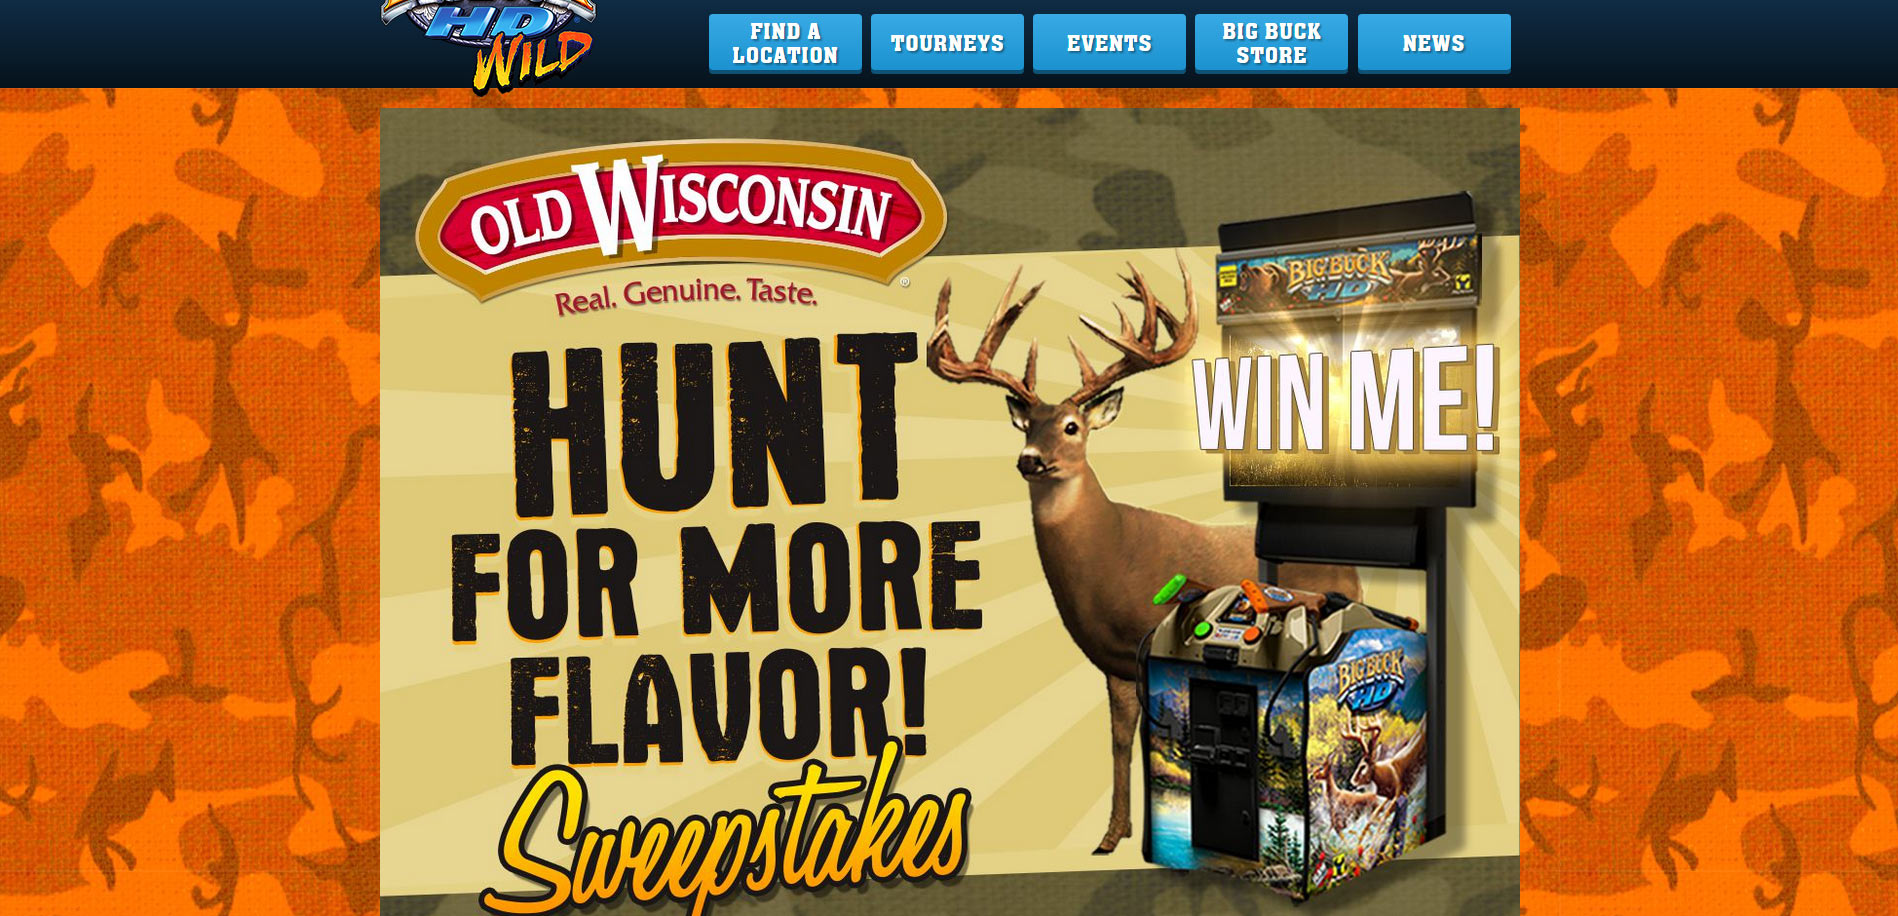 BigBuckHD.com/MeatSnacks - Hunt For More Flavor Sweepstakes